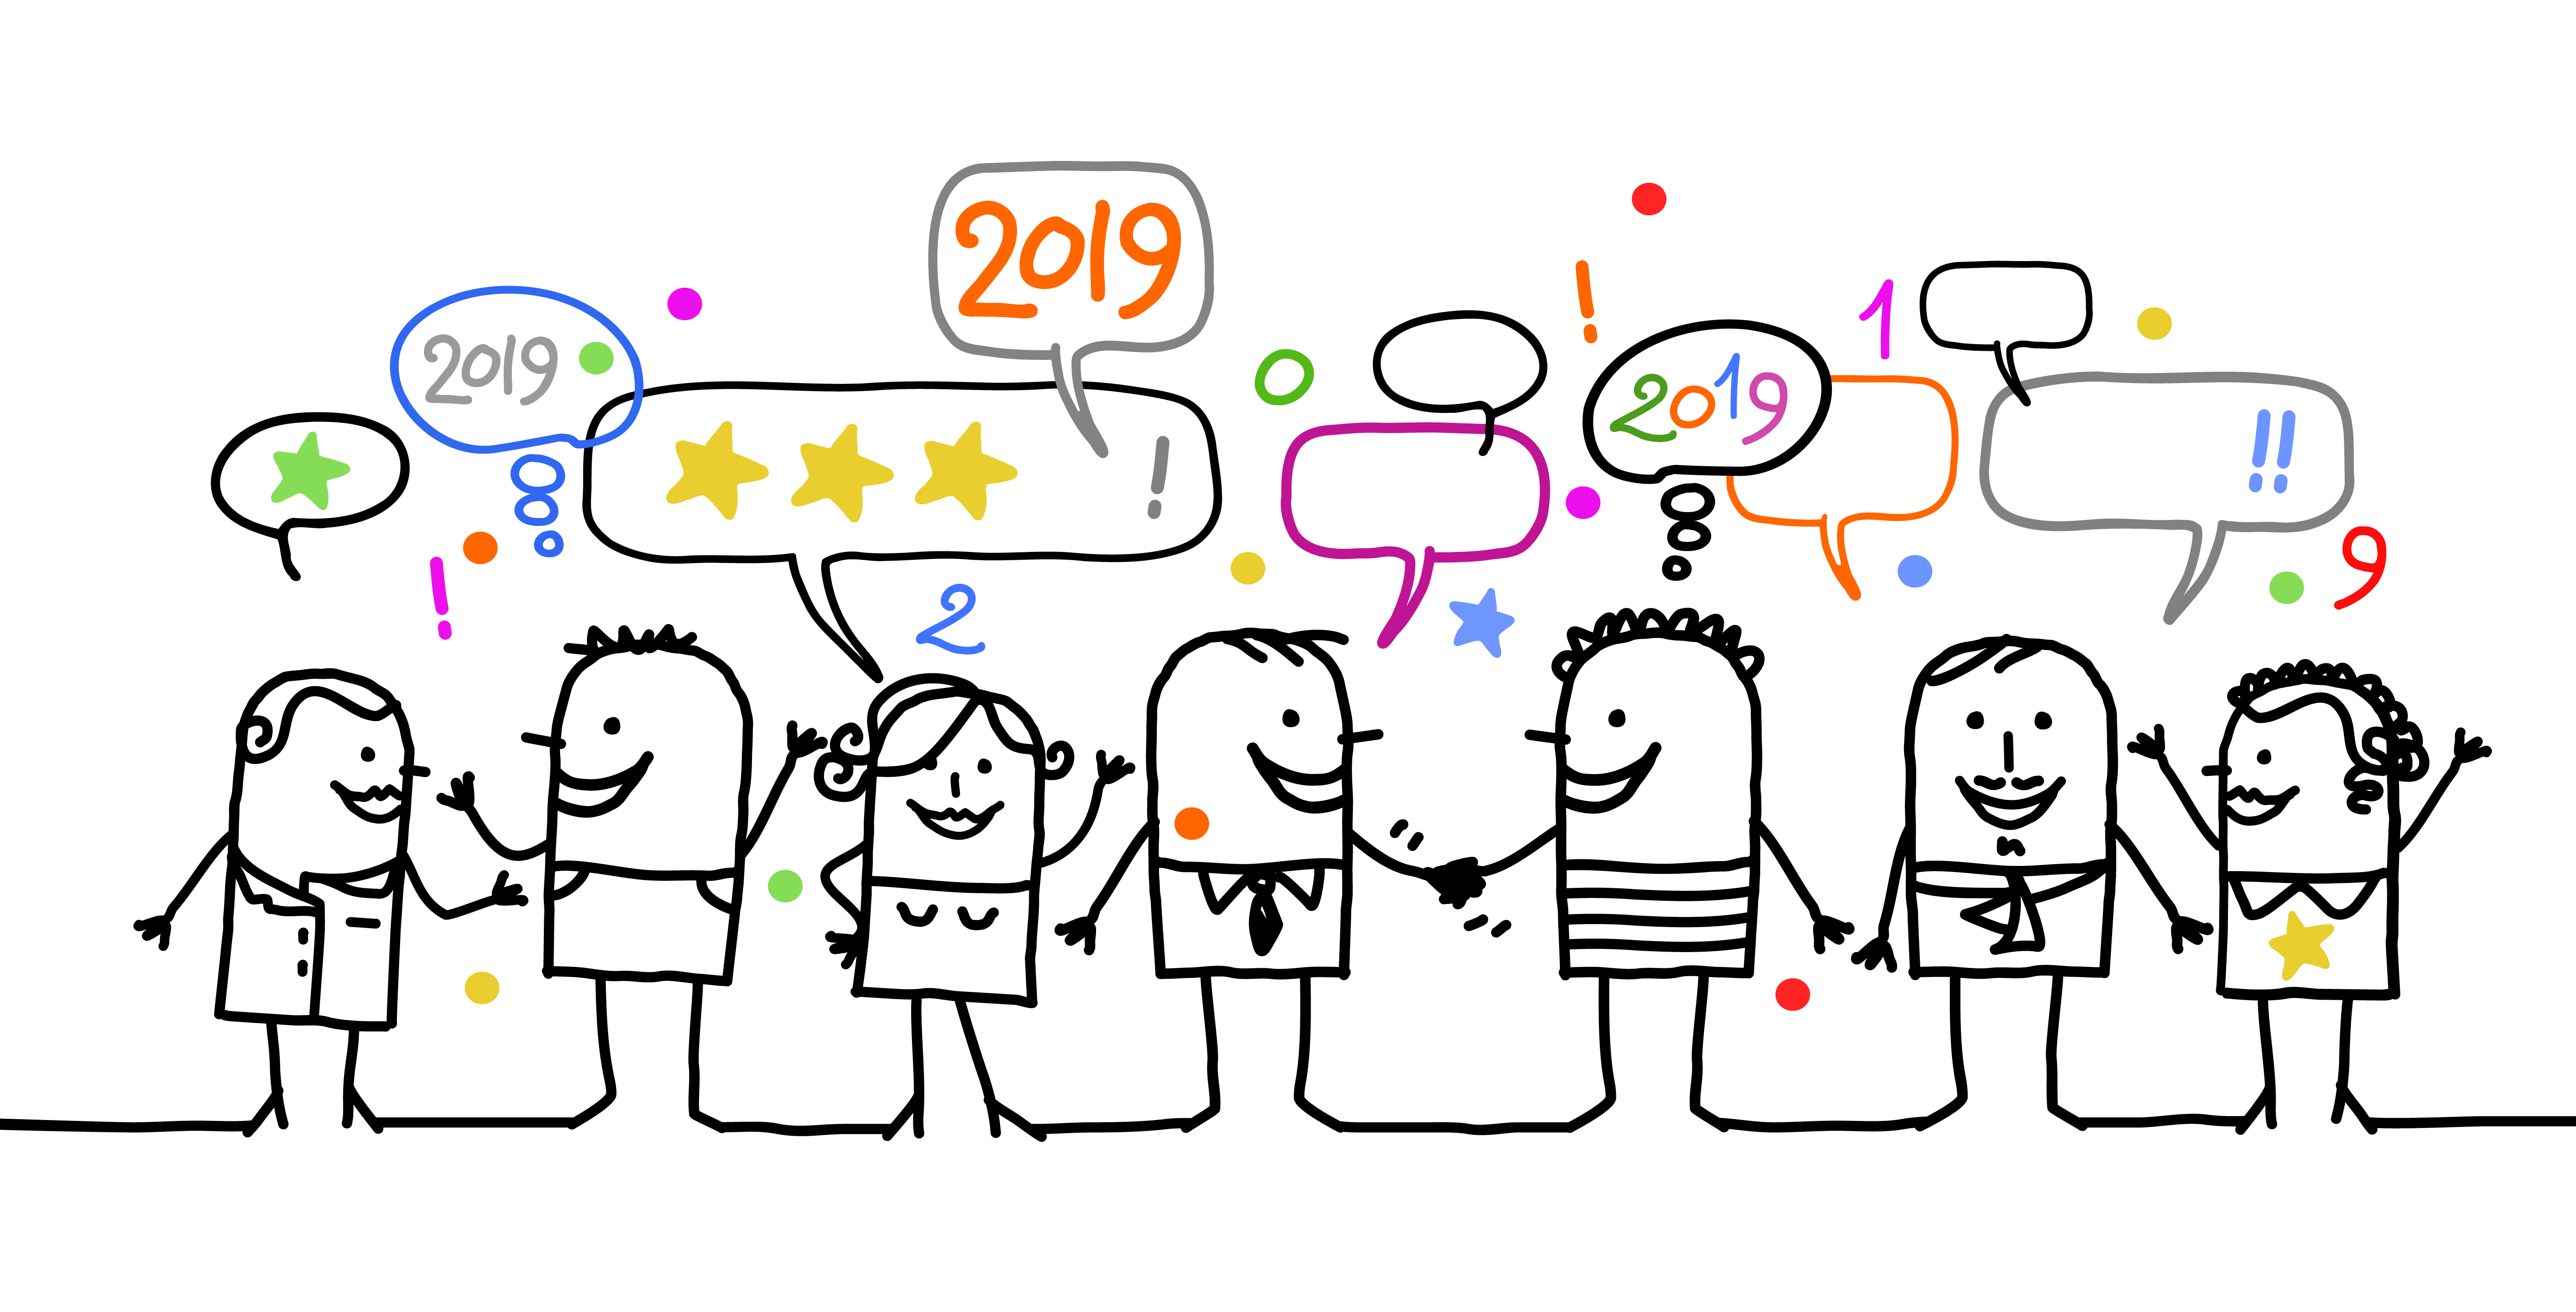 iStock2019Inreview